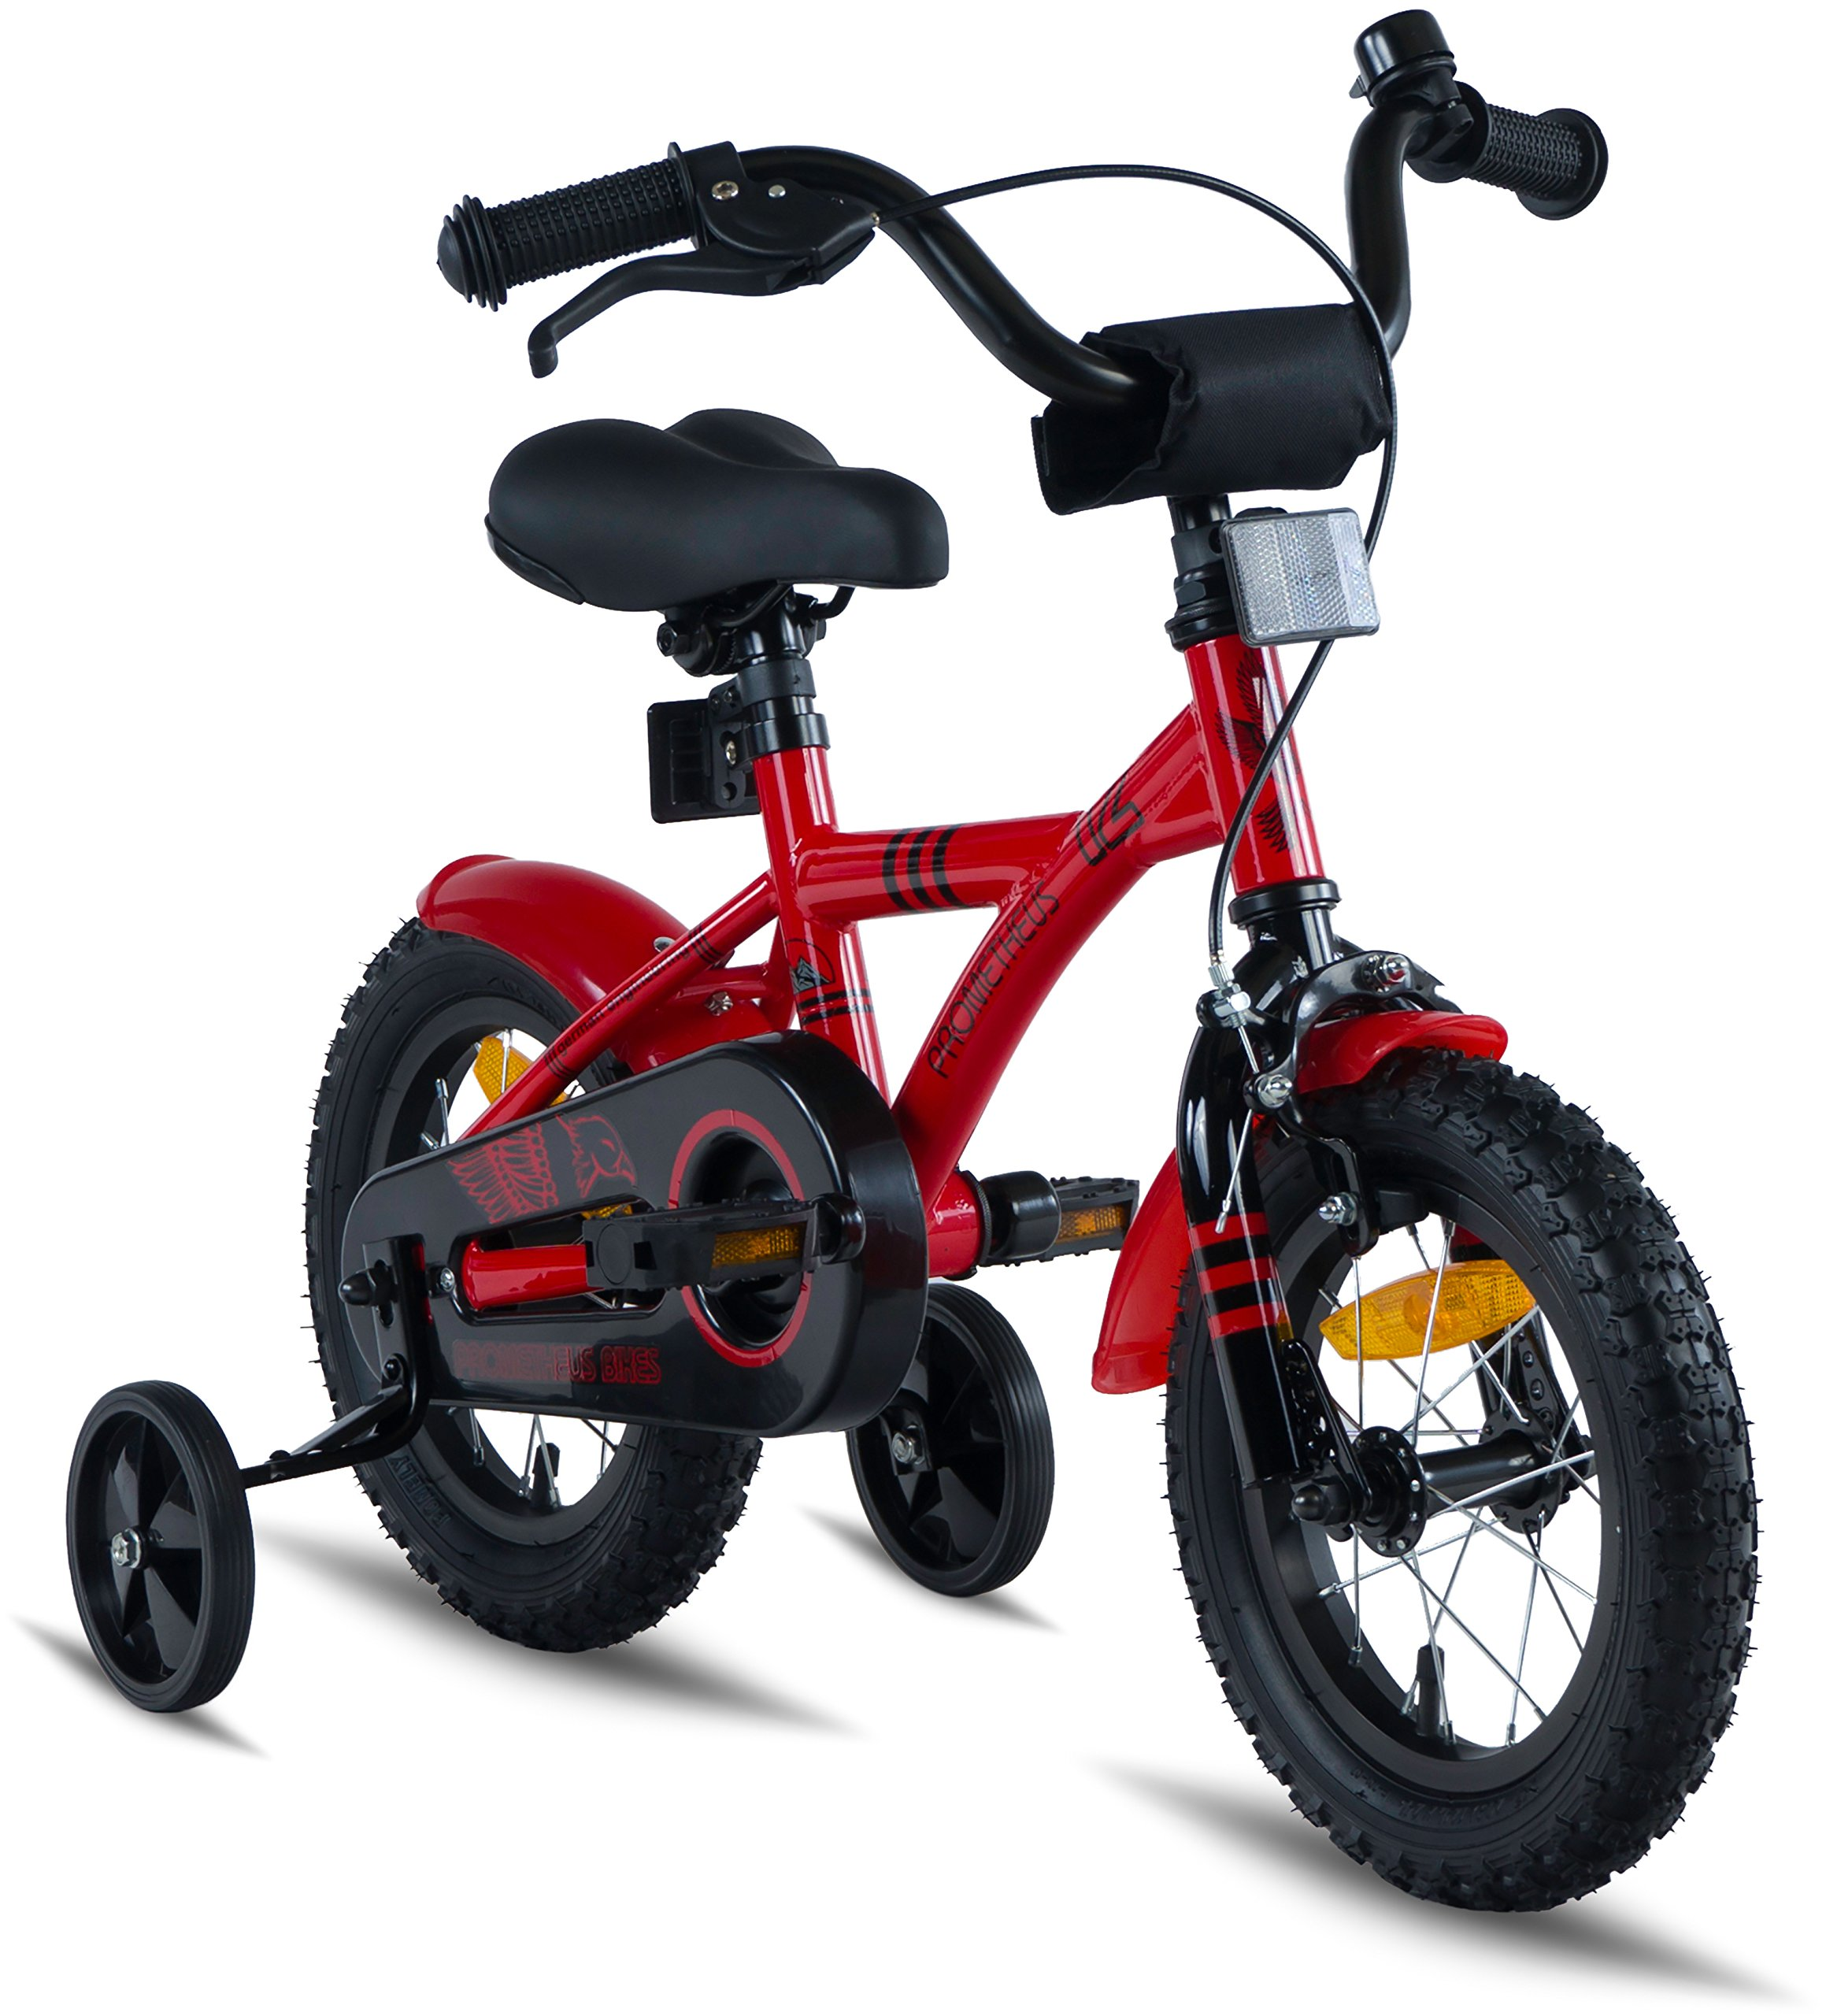 "PROMETHEUS Kids bike 12 inch Boys and Girls in Red & Black with stabilisers | Aluminum Calliper brake and backpedal brake | including security package | as from 3 years | 12"" BMX Edition 2018 by PROMETHEUS BICYCLES®"